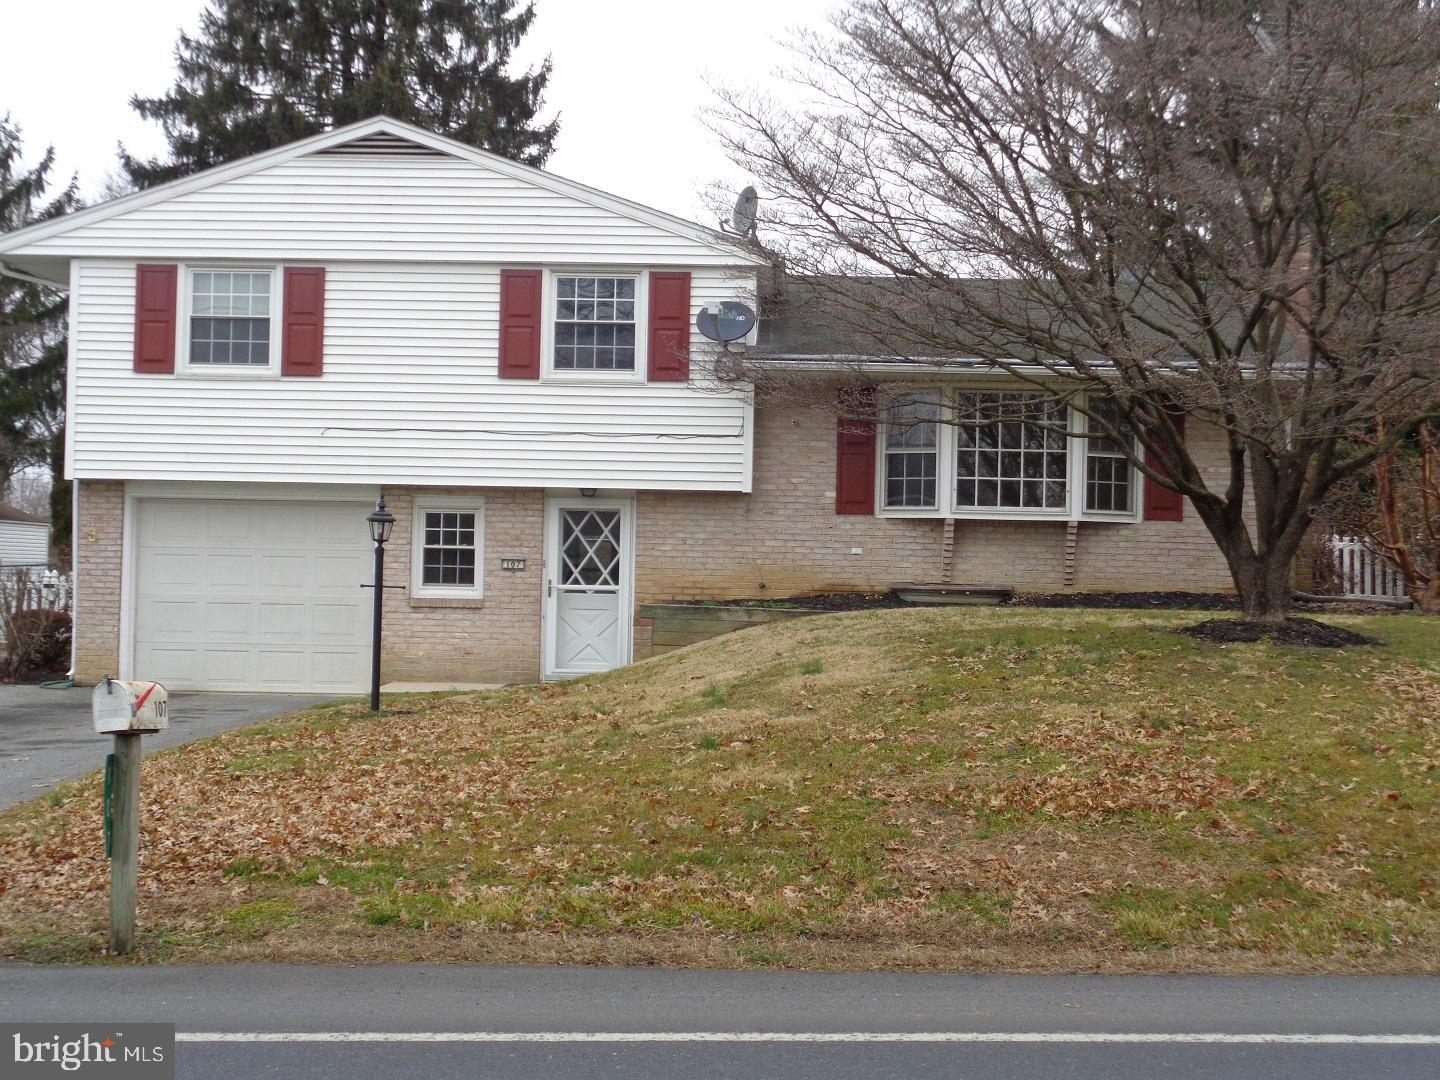 107 PENN GRANT ROAD, WILLOW STREET, PA 17584